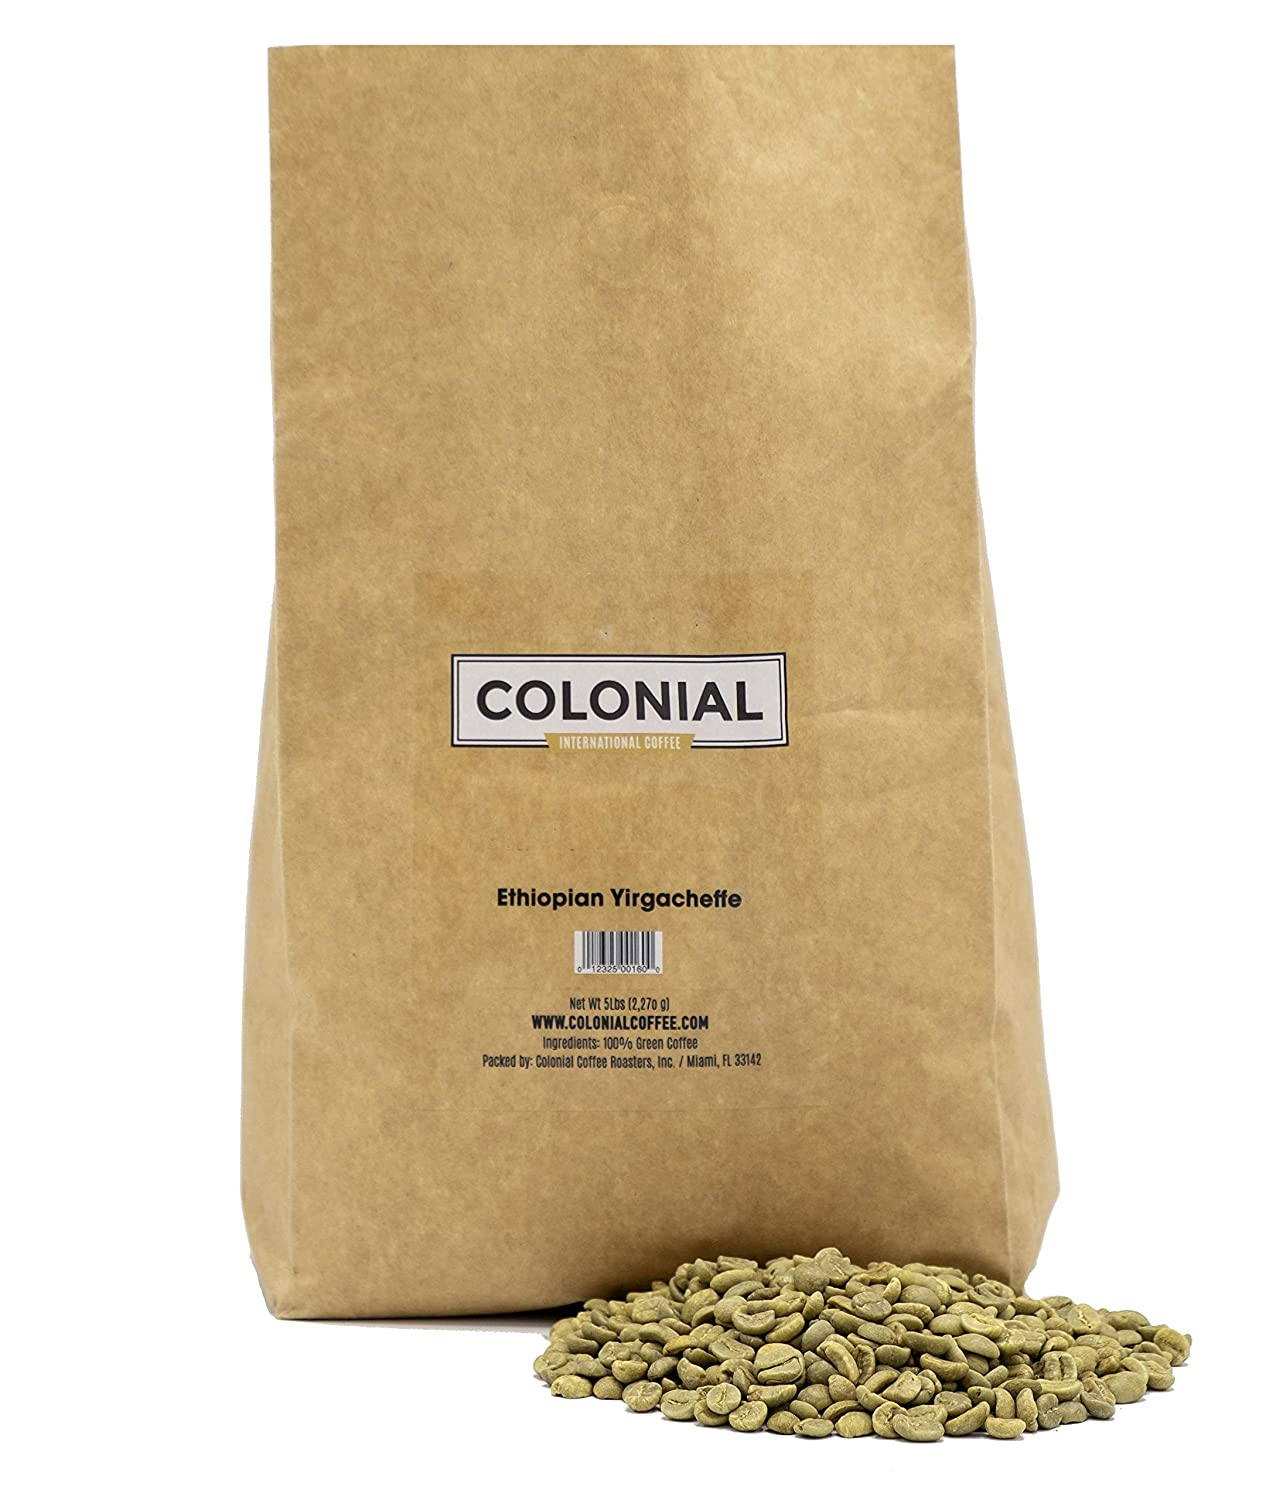 Colonial Coffee Unroasted Green lowest price ETHIOPIAN YIRG Tucson Mall Raw Beans